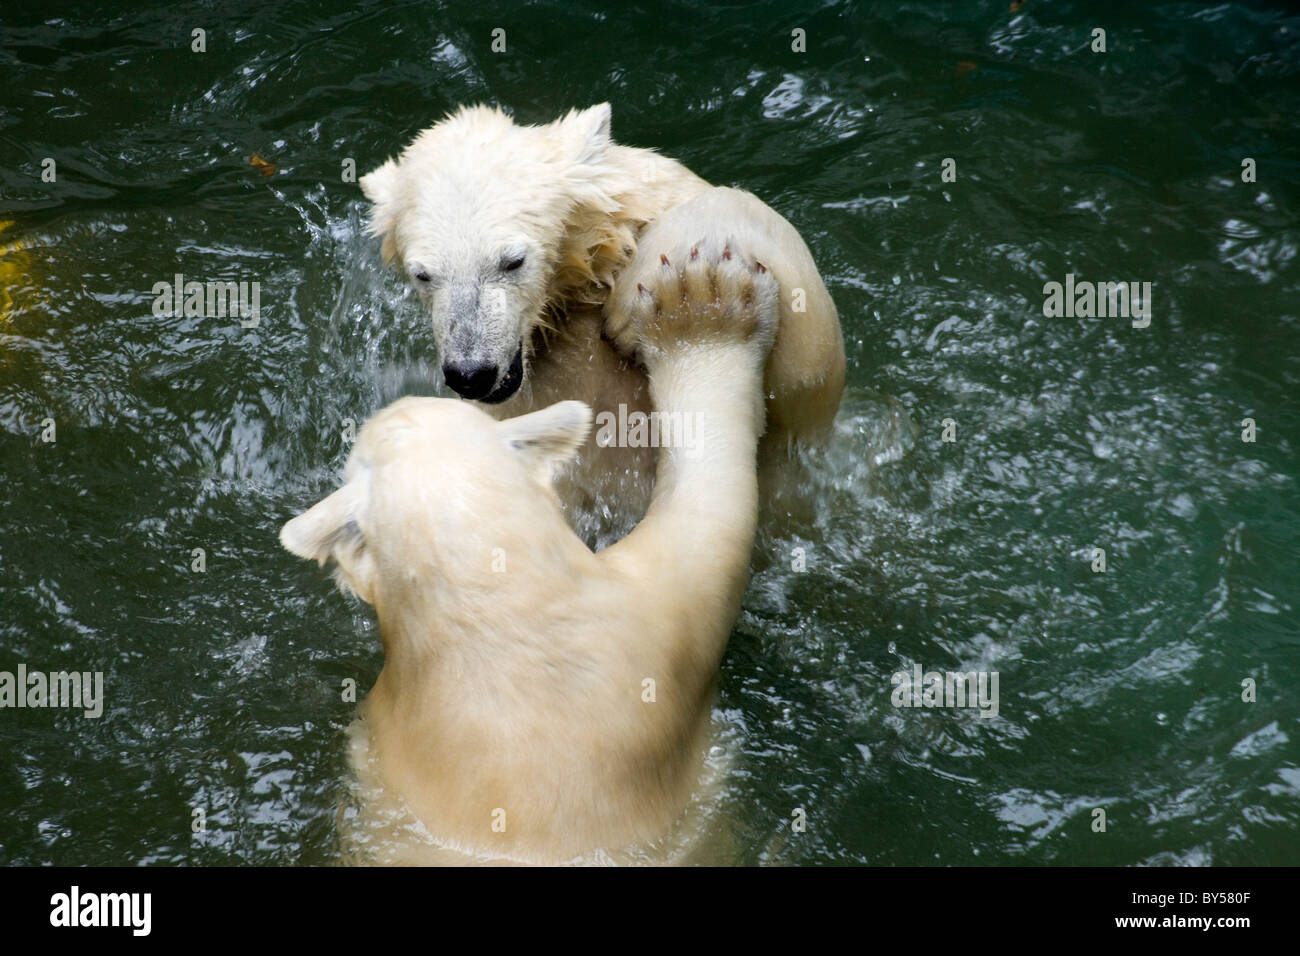 Kids of Polar Bear (Ursus maritimus, Thalarctos maritimus) in water Stock Photo